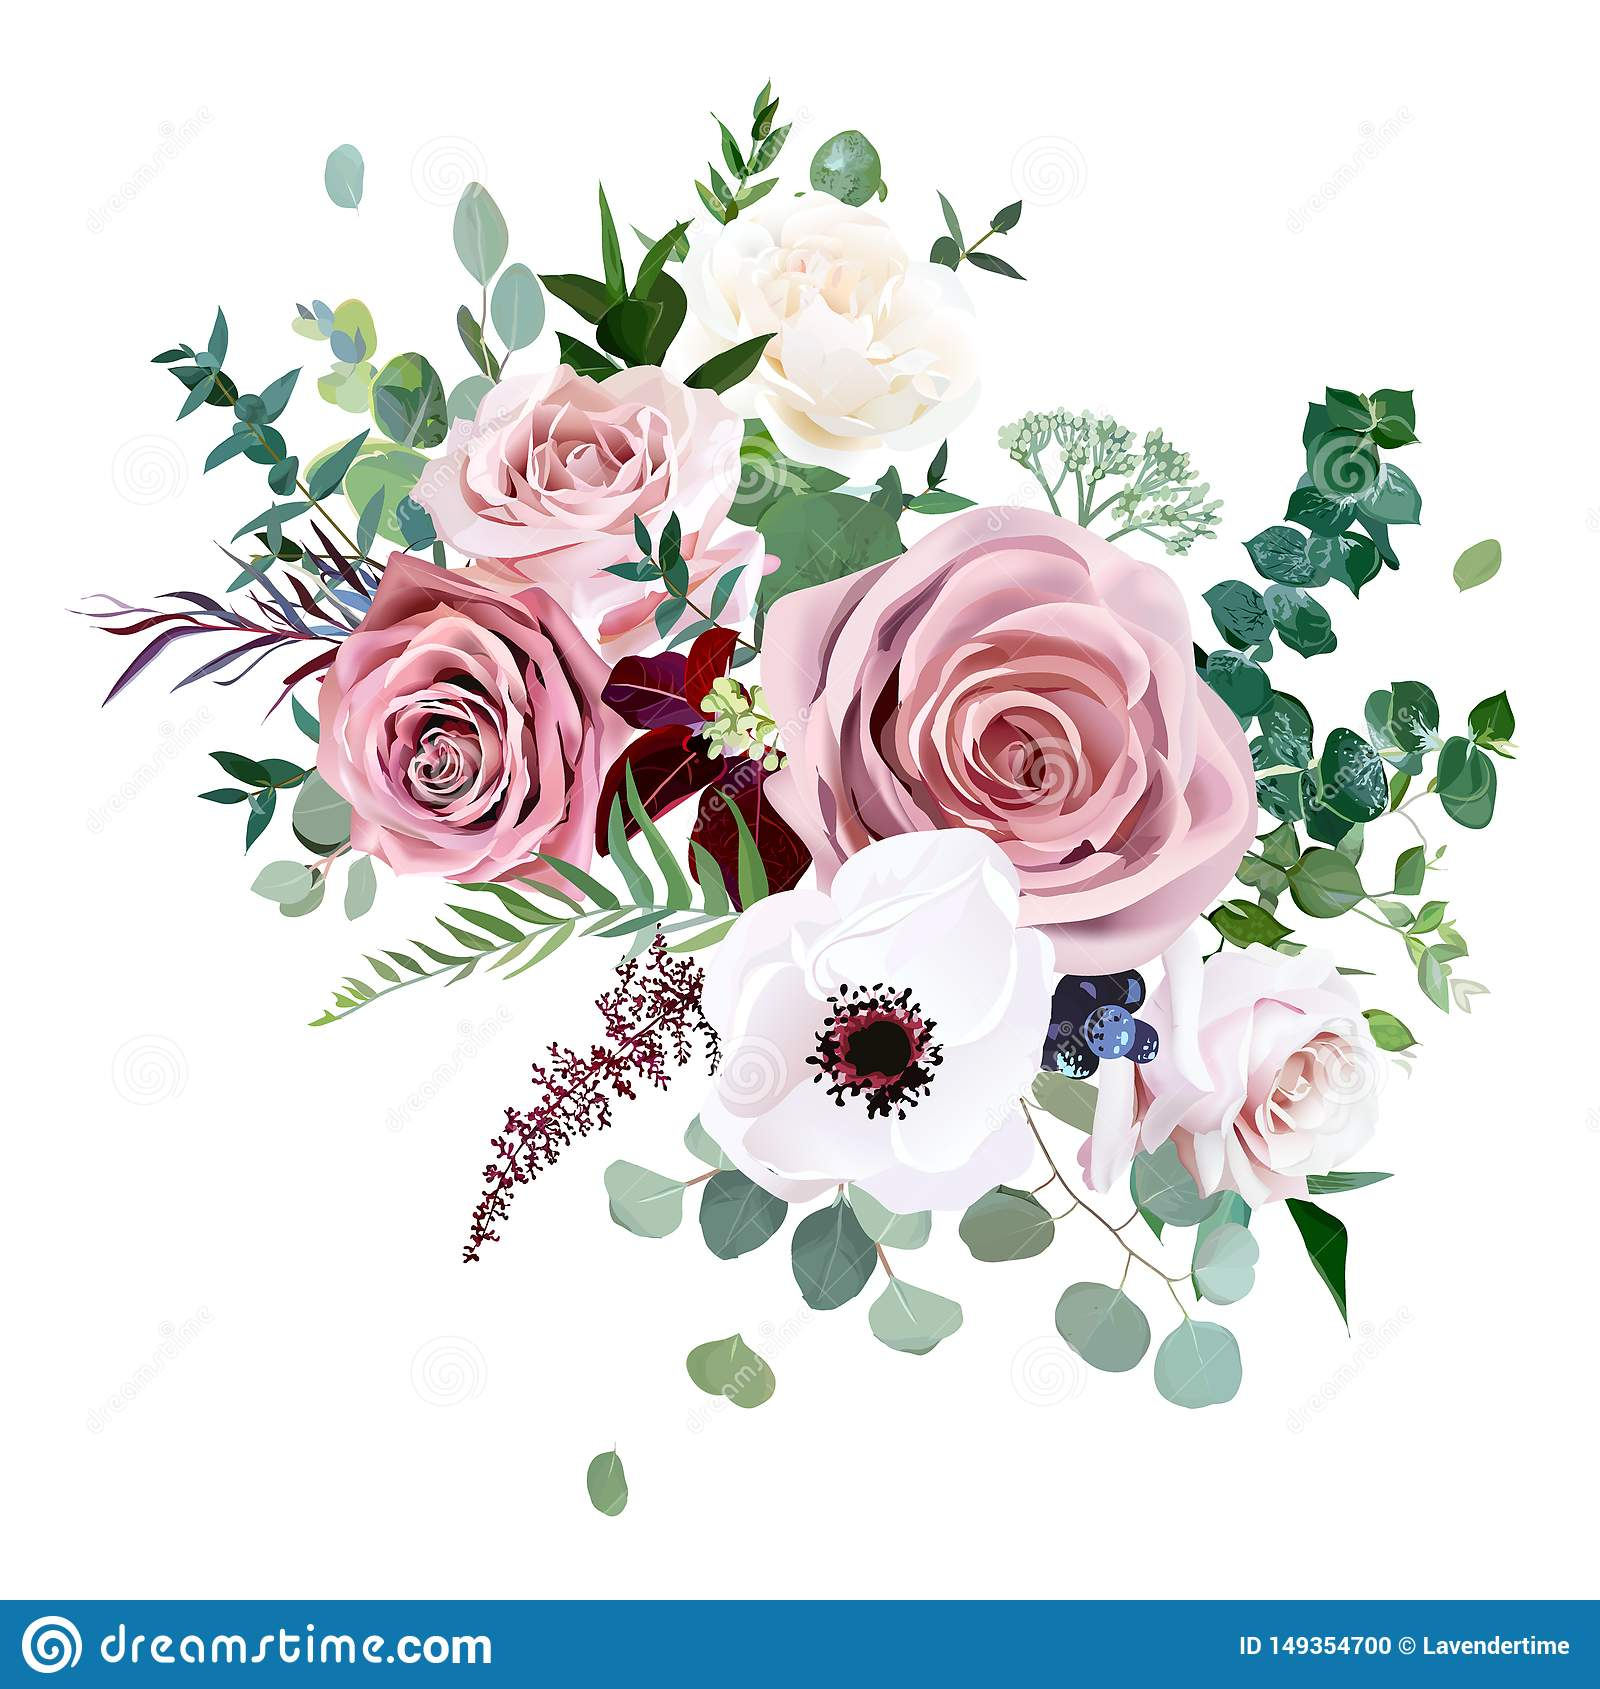 Rose Anemone Pale Flowers Vector Design Wedding Bouquet Stock Vector Illustration Of Branch Border 149354700